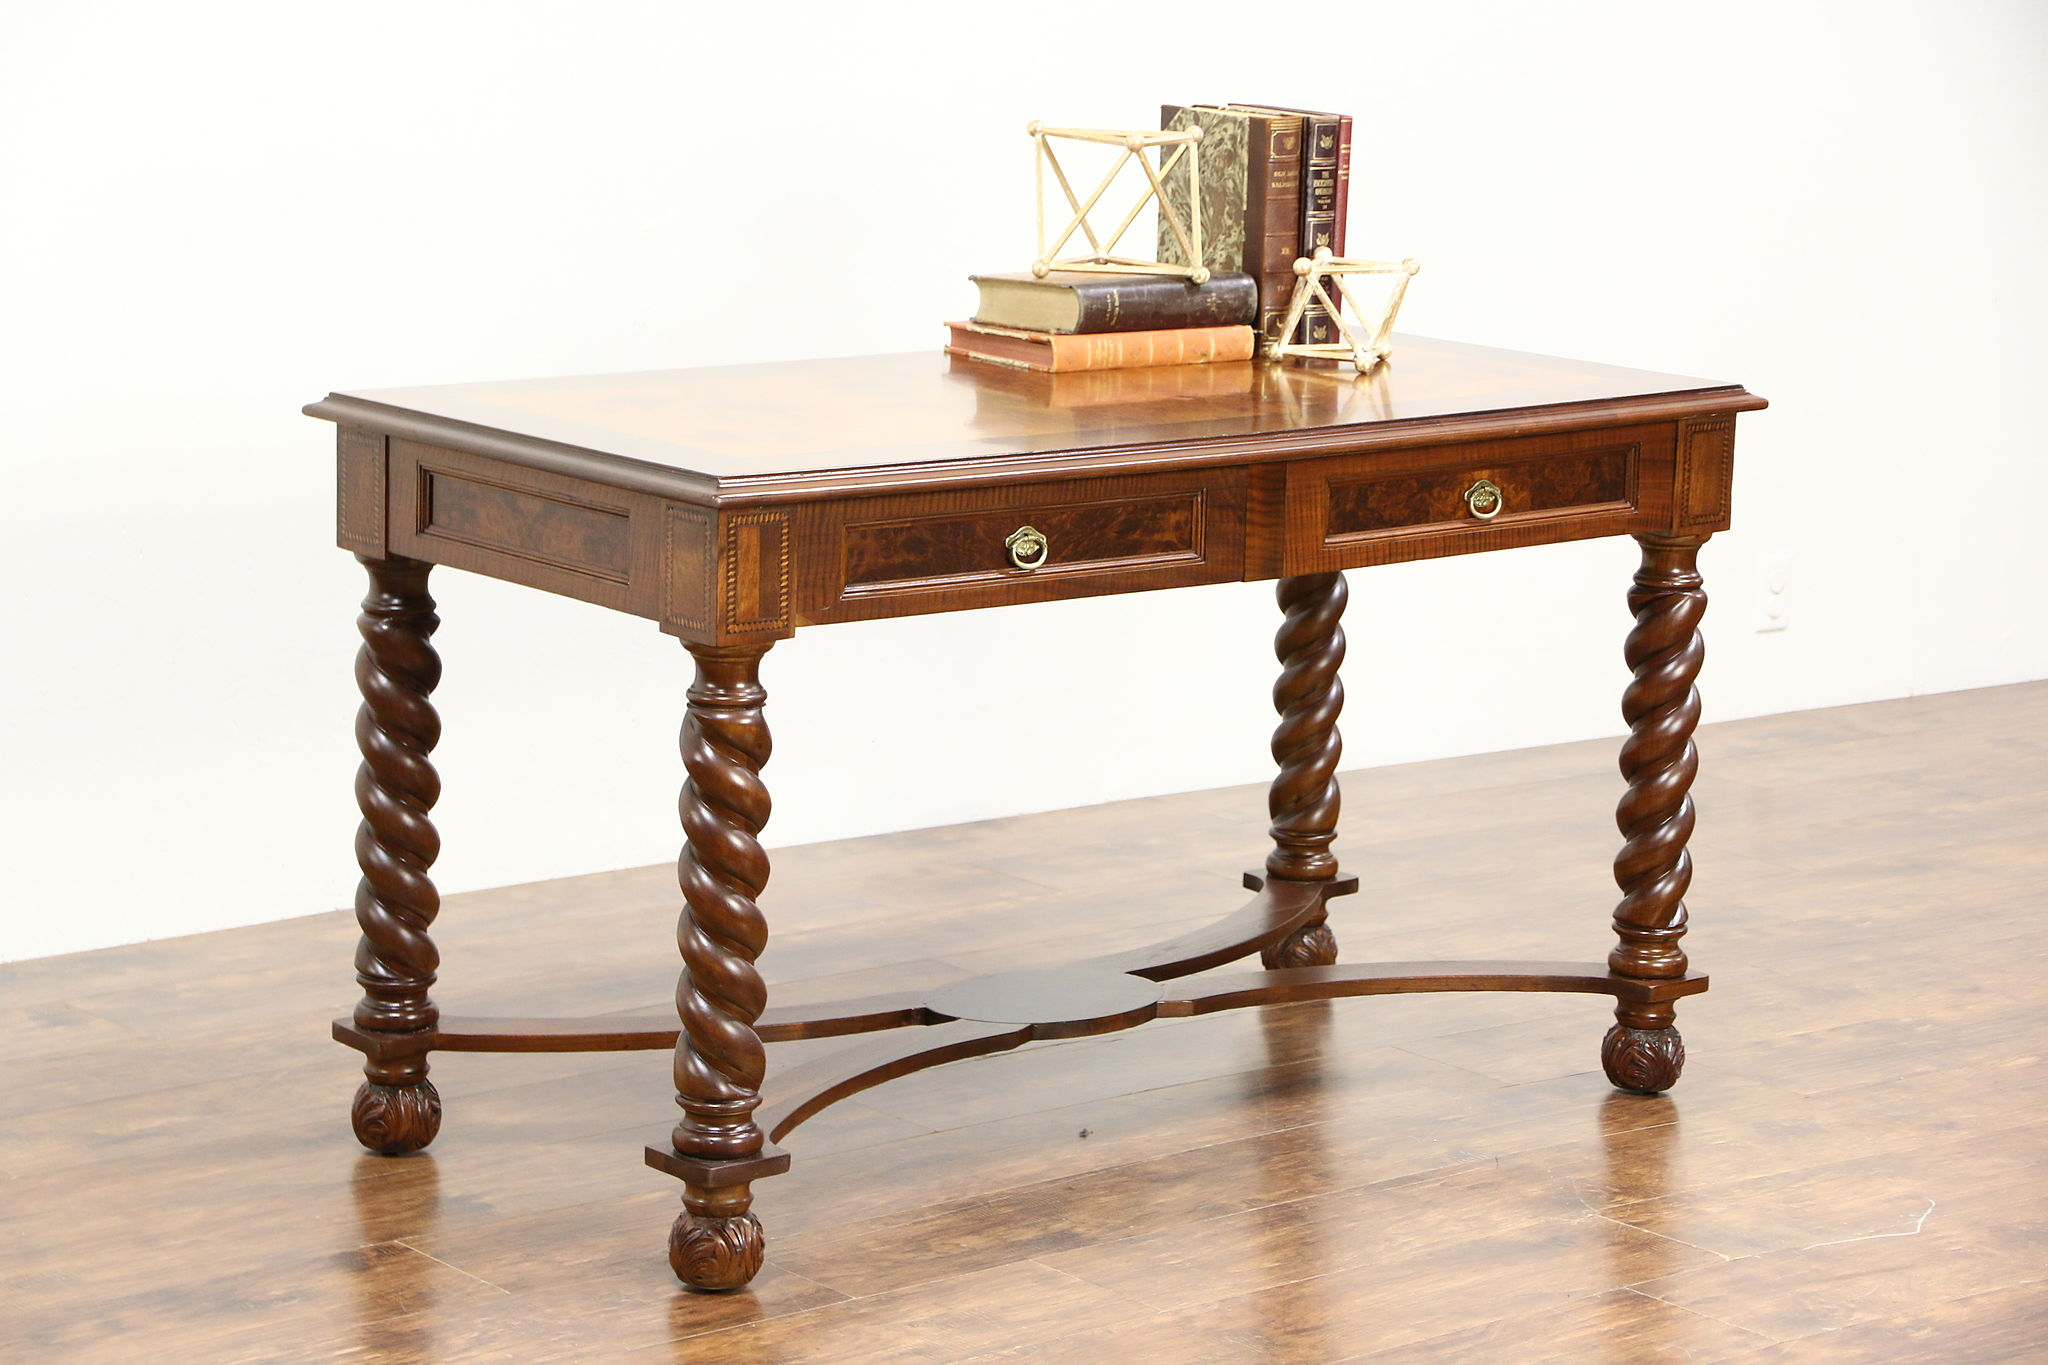 Library Table Antique Writing Desk, Spiral Legs, Inlaid Banding, Mandel  Chicago